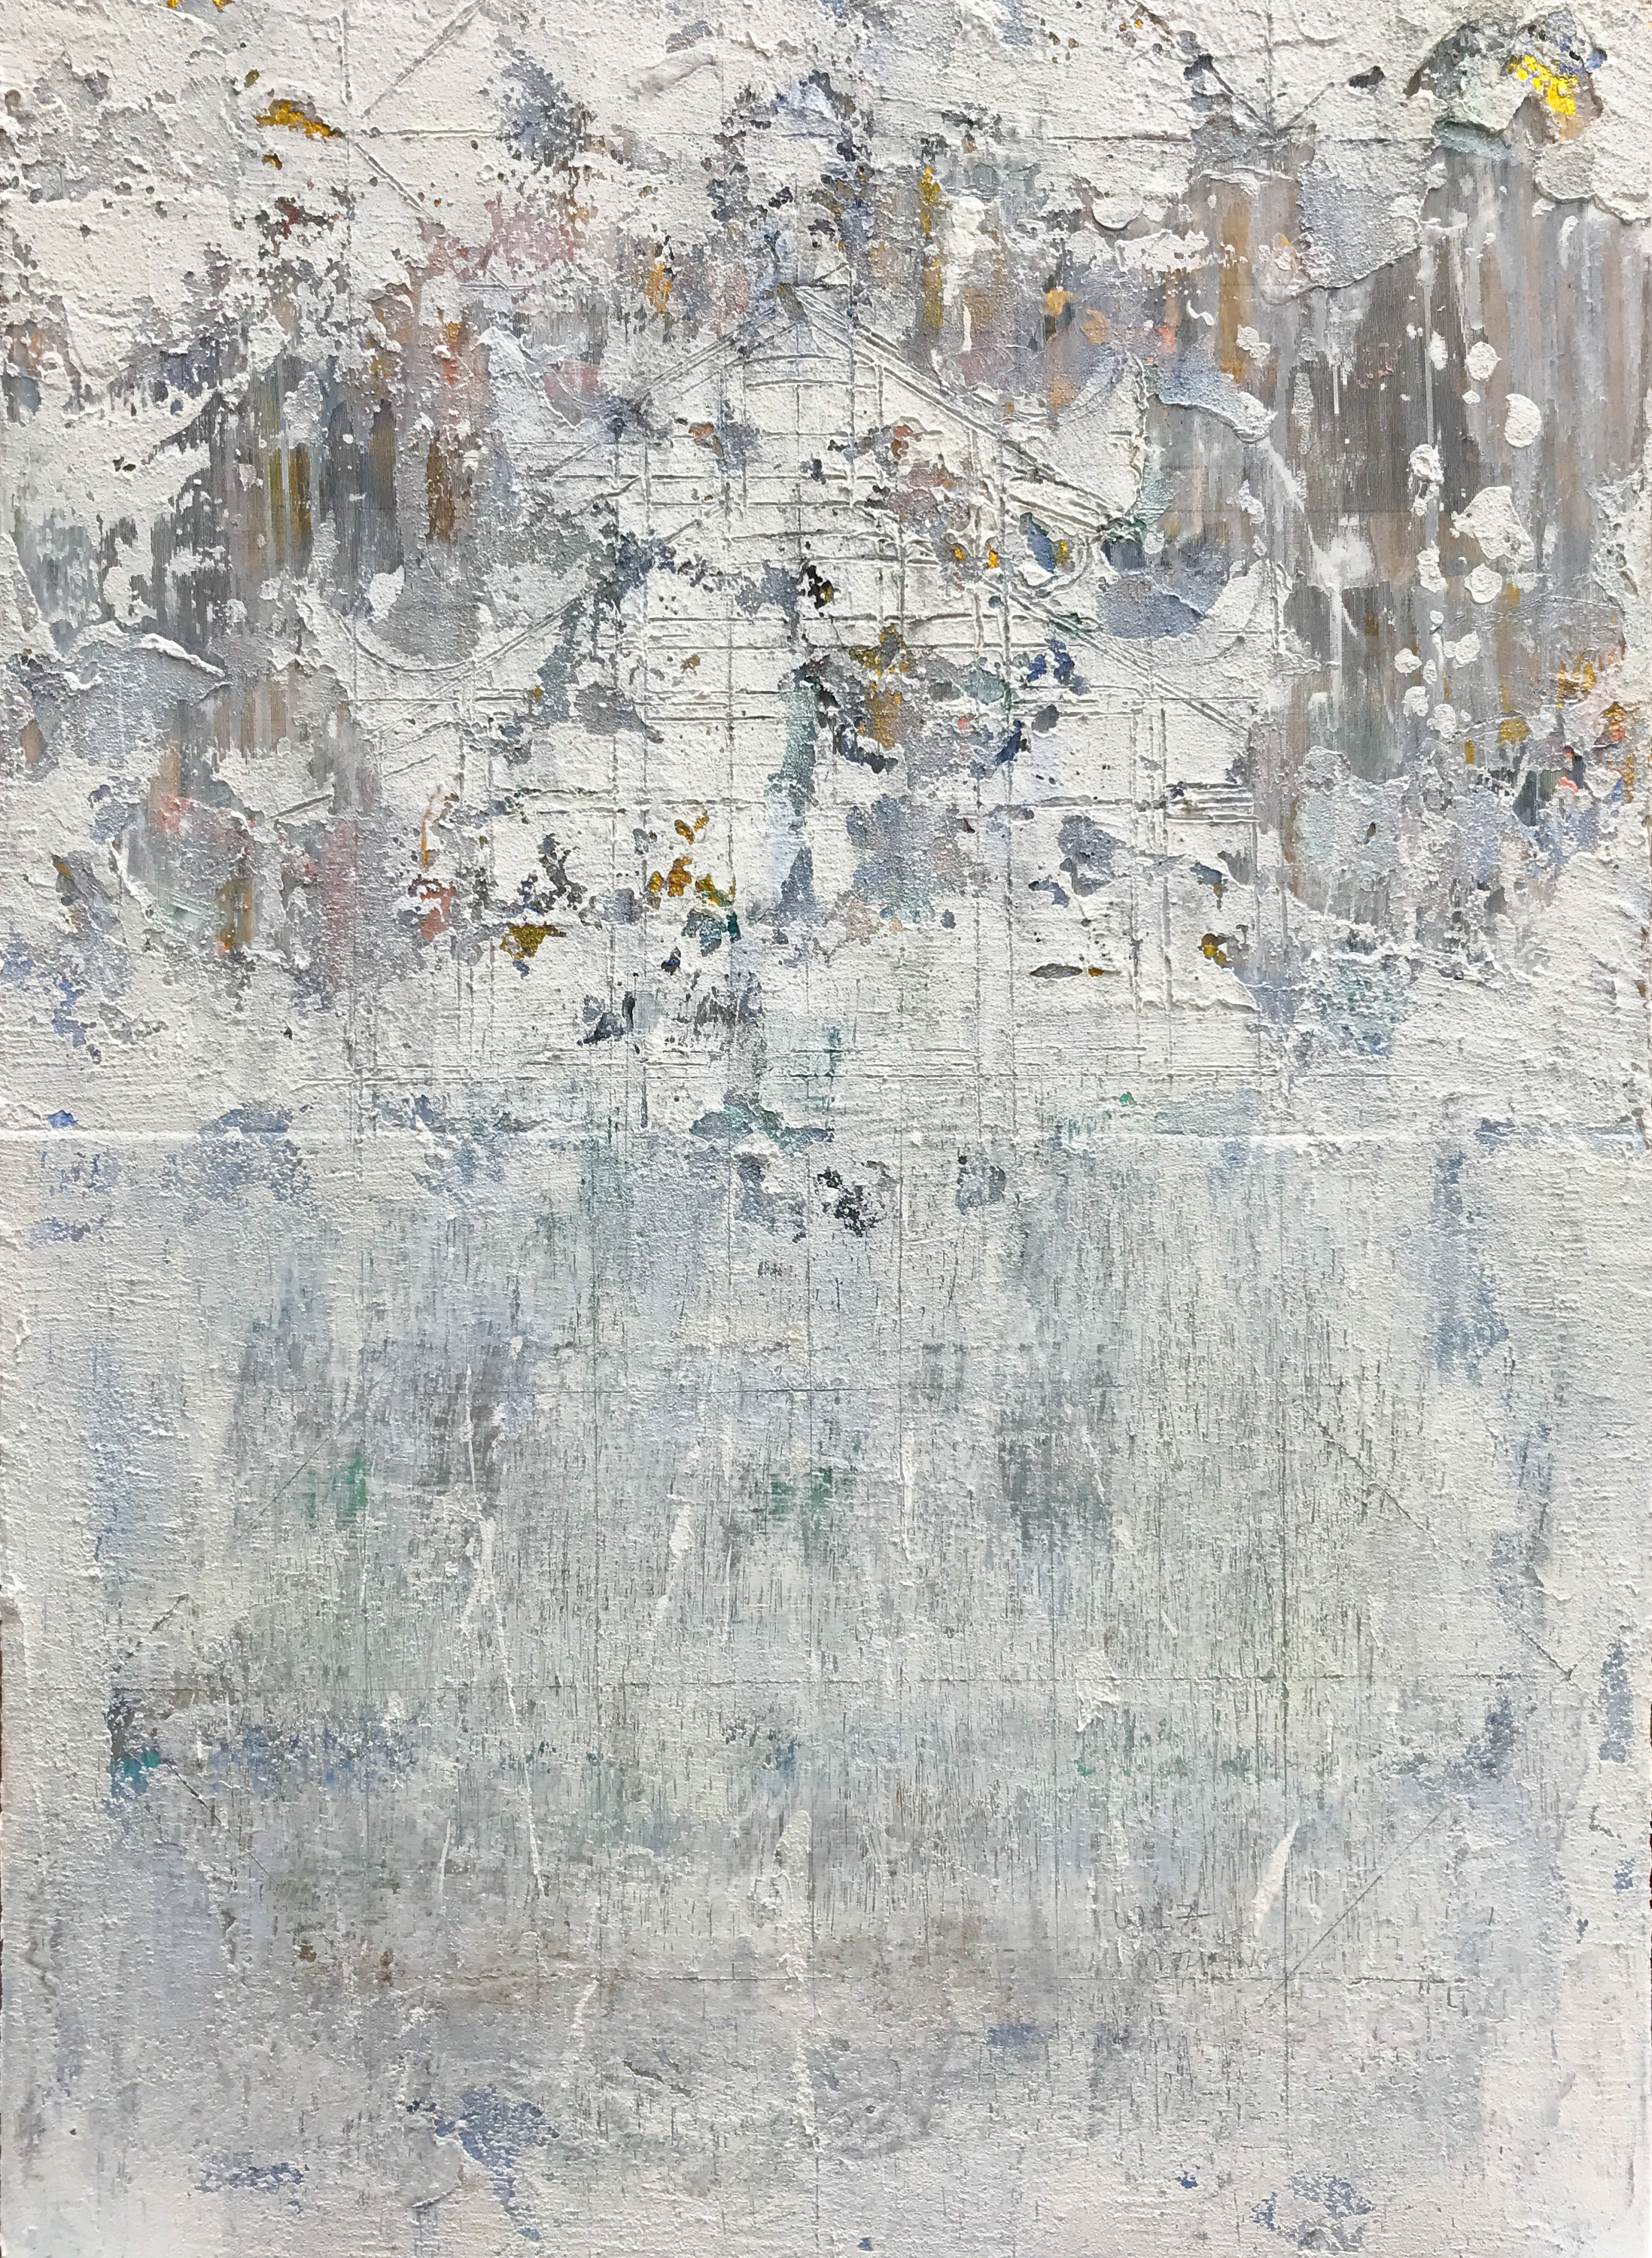 Early Winter Morning #1, 2017, Oil and Acrylic on Silk and Canvas, 97 x 70 cm, HA Manh Thang